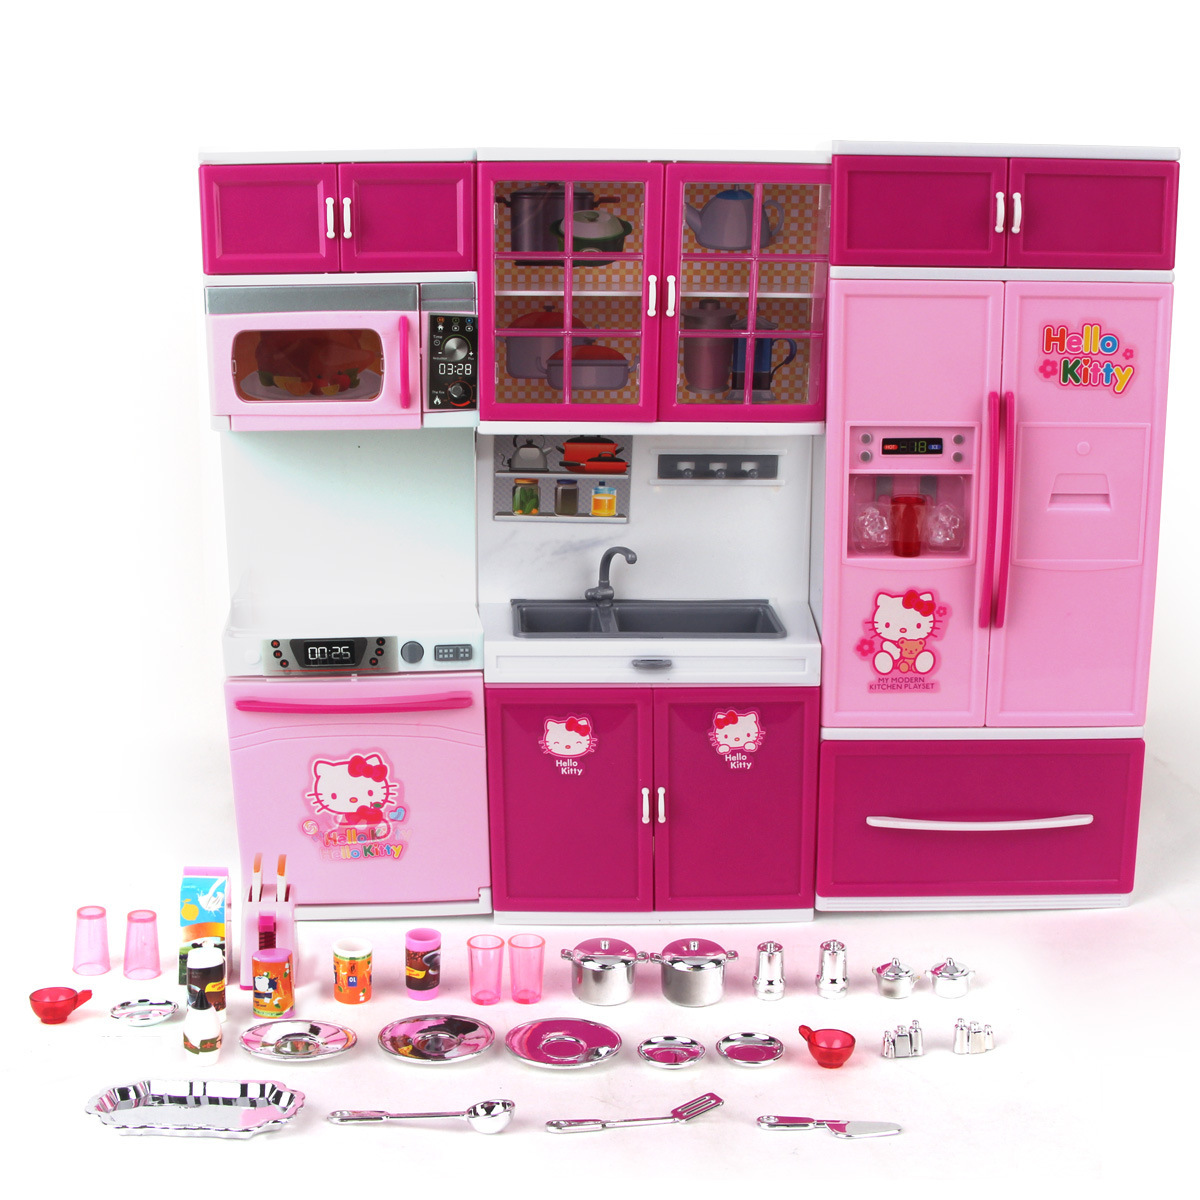 Pink kid kitchen fun toy pretend play cook cooking cabinet stove set sound and light baby puzzle plastic toys childrens play toy kitchen hello kitty girl teraionfo